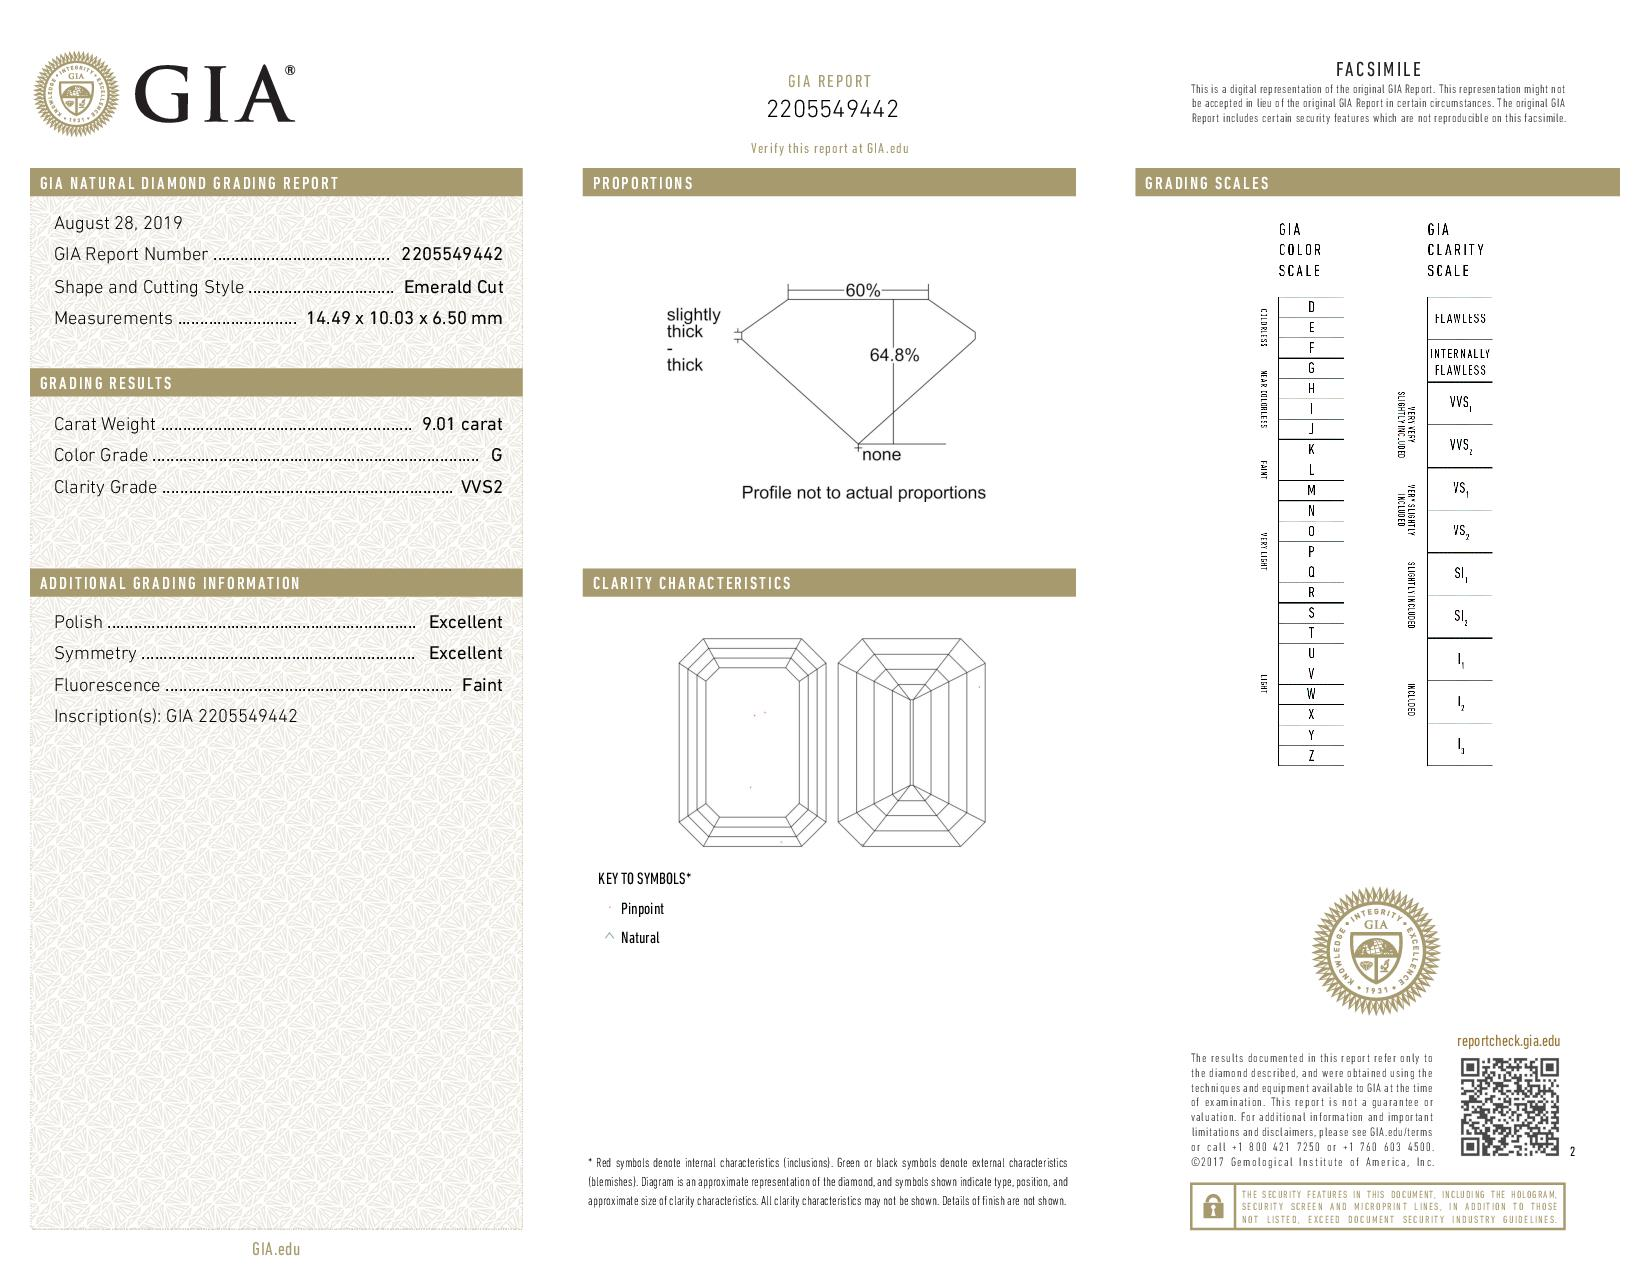 This is a 9.01 carat emerald shape, G color, VVS2 clarity natural diamond accompanied by a GIA grading report.